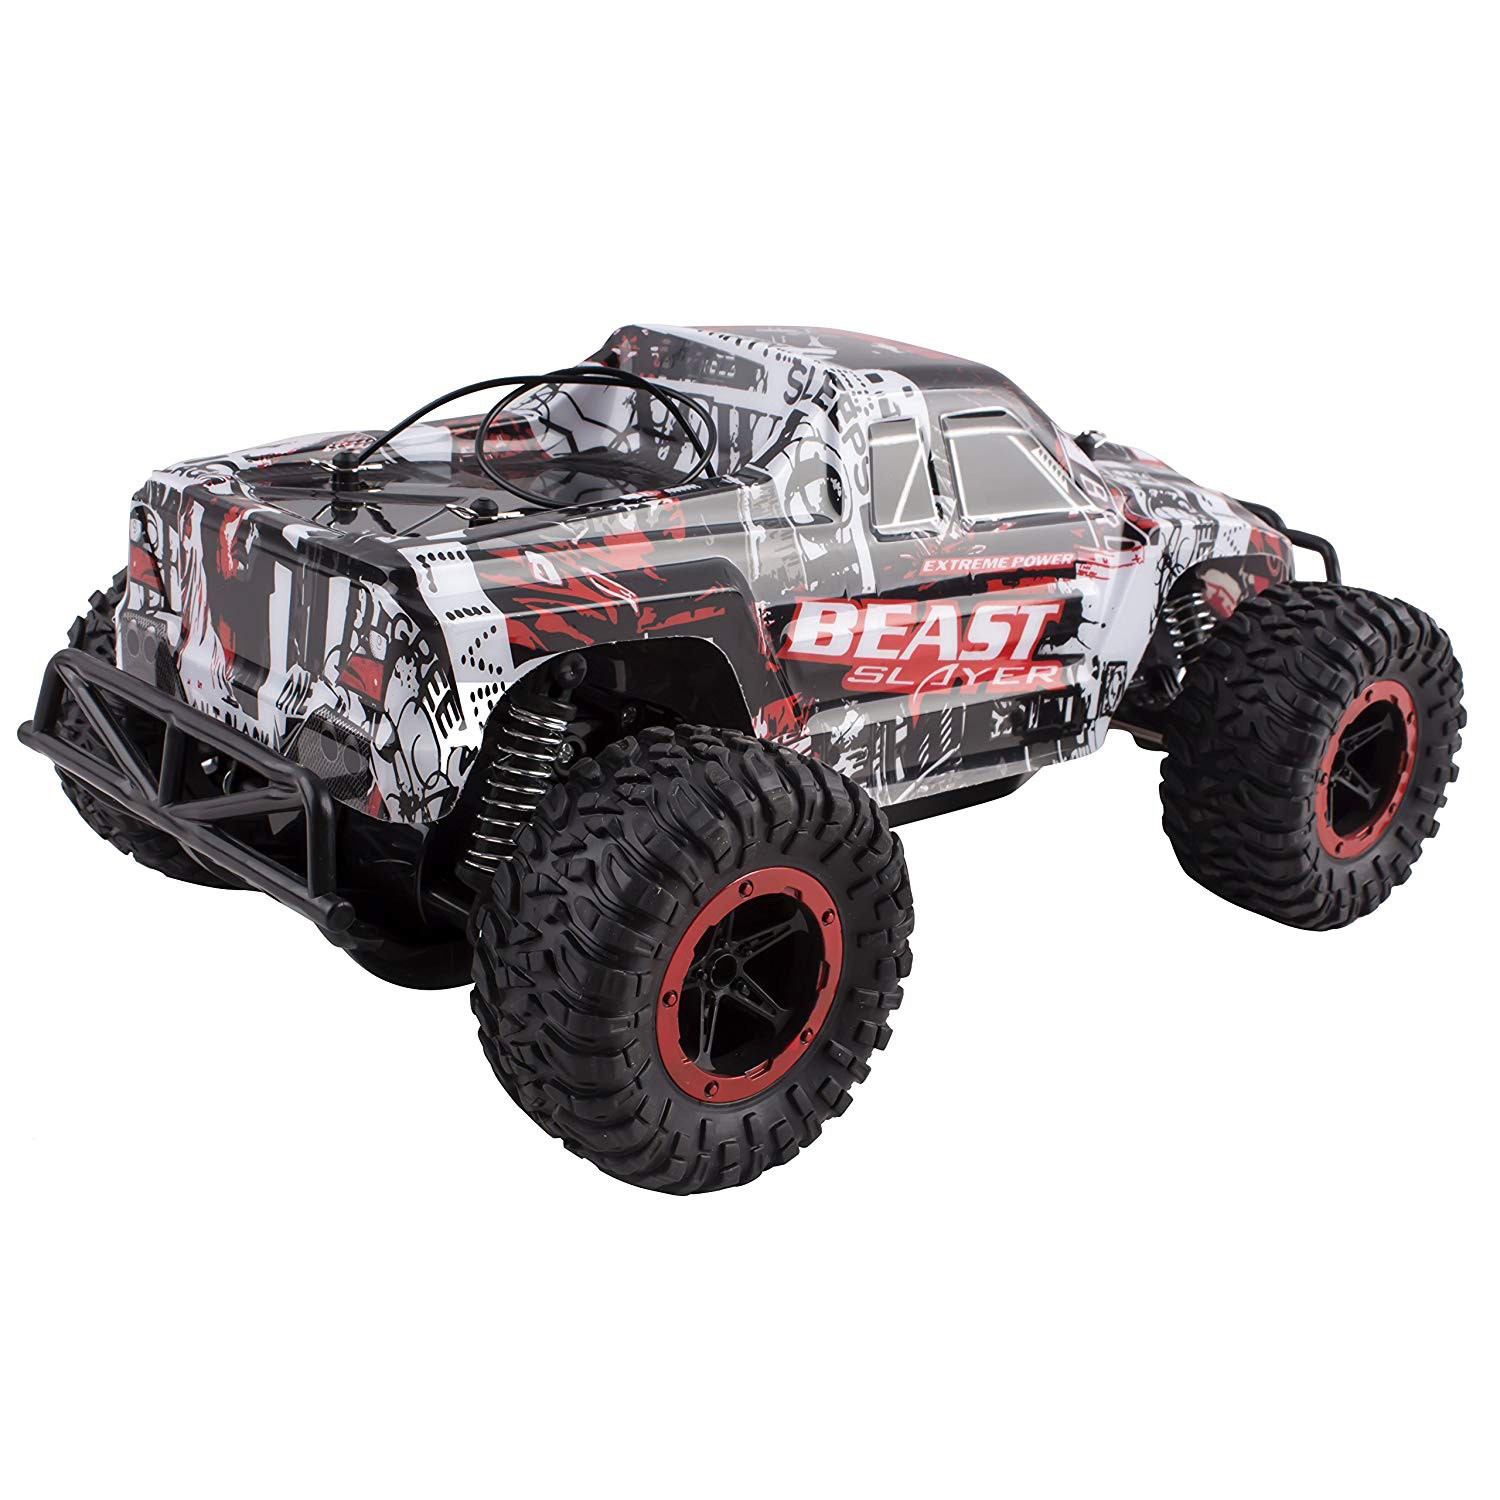 RC Truck Beast Slayer Removable Body Remote Control Turbo RC